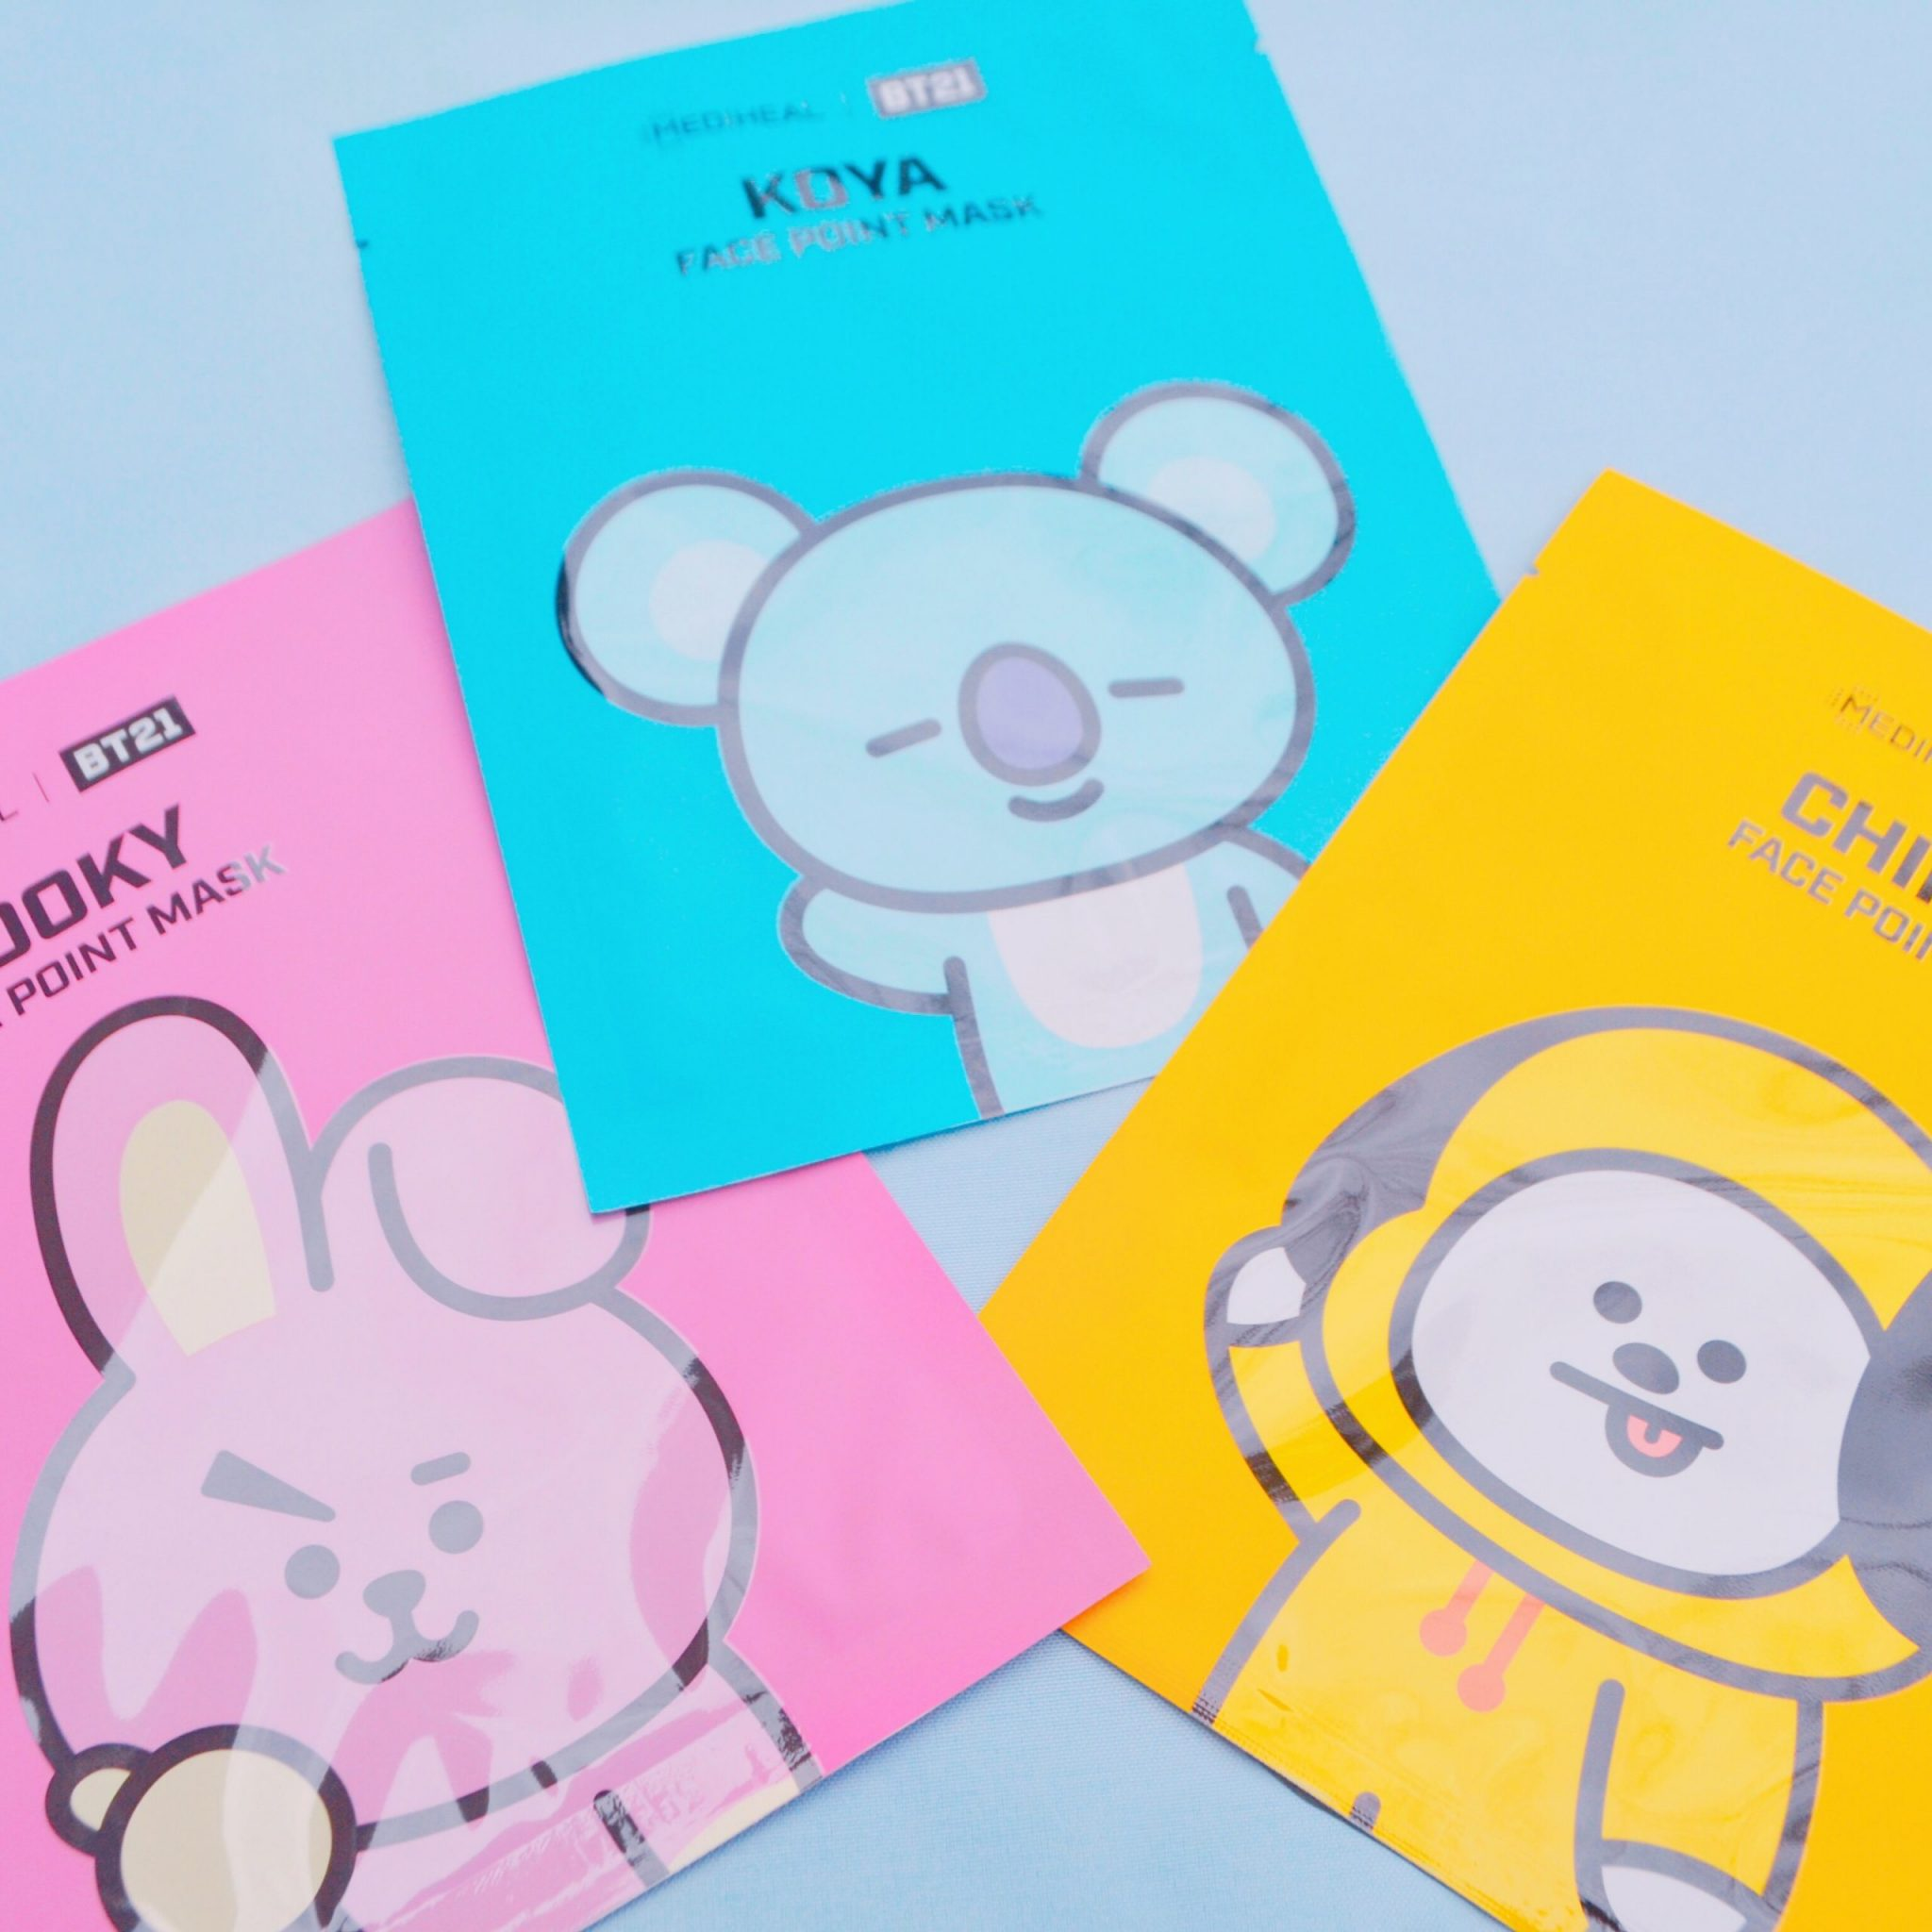 bts bt21 koya chimmy cooky kpop korean beauty korea face point mask skin care skincare